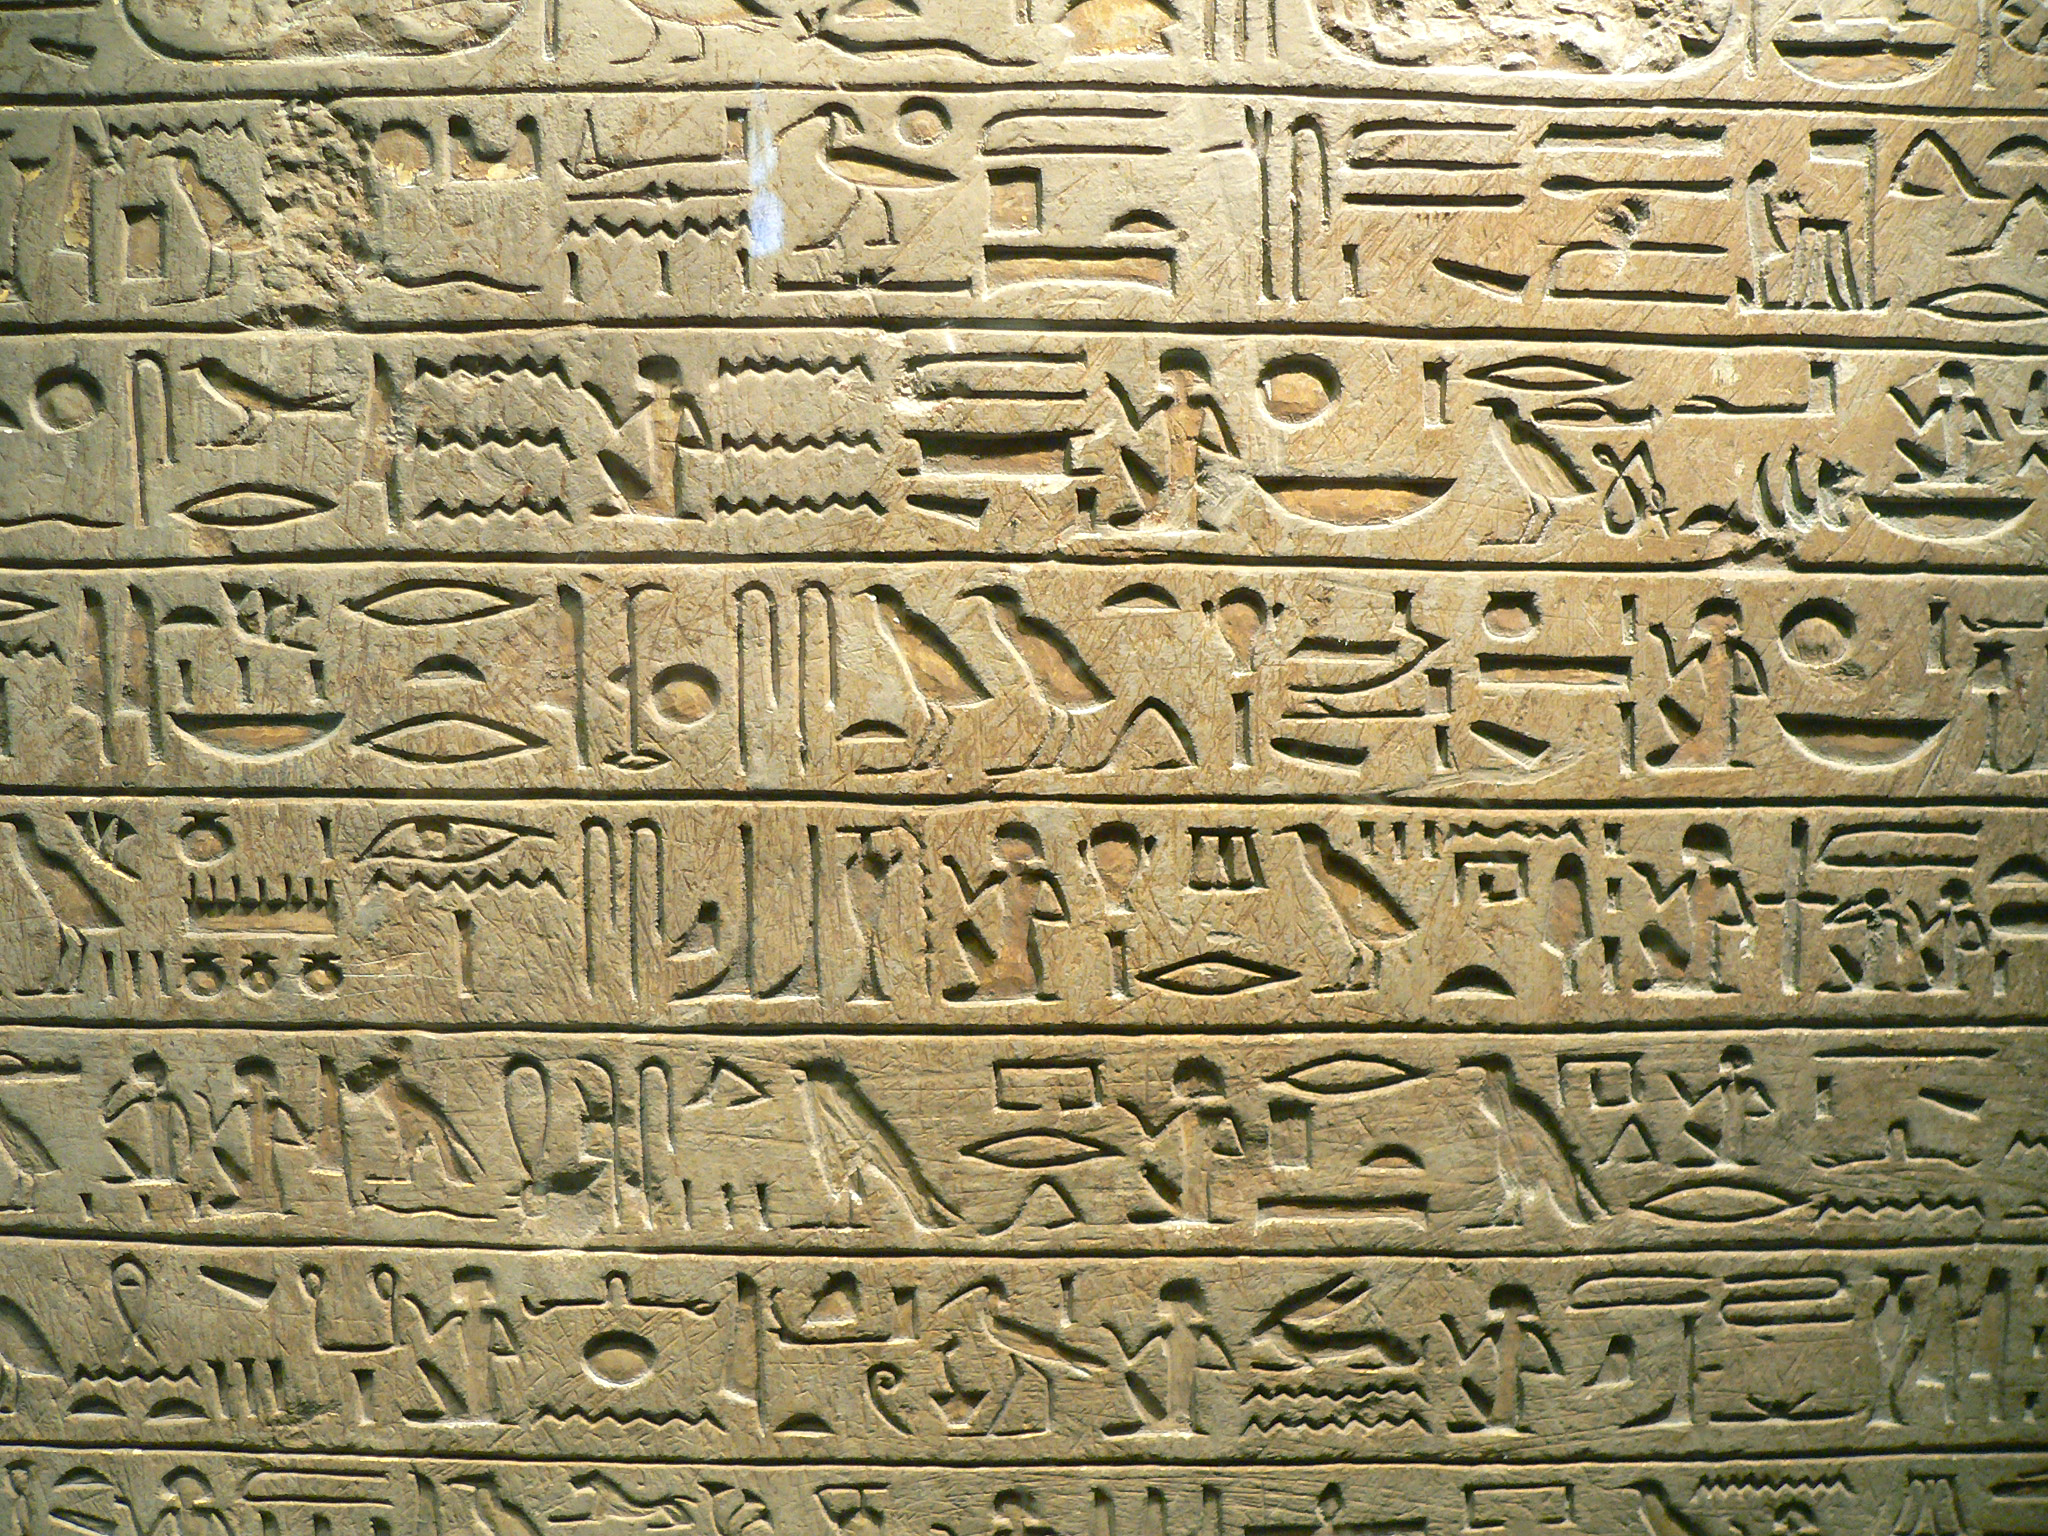 Ancient forms of writing